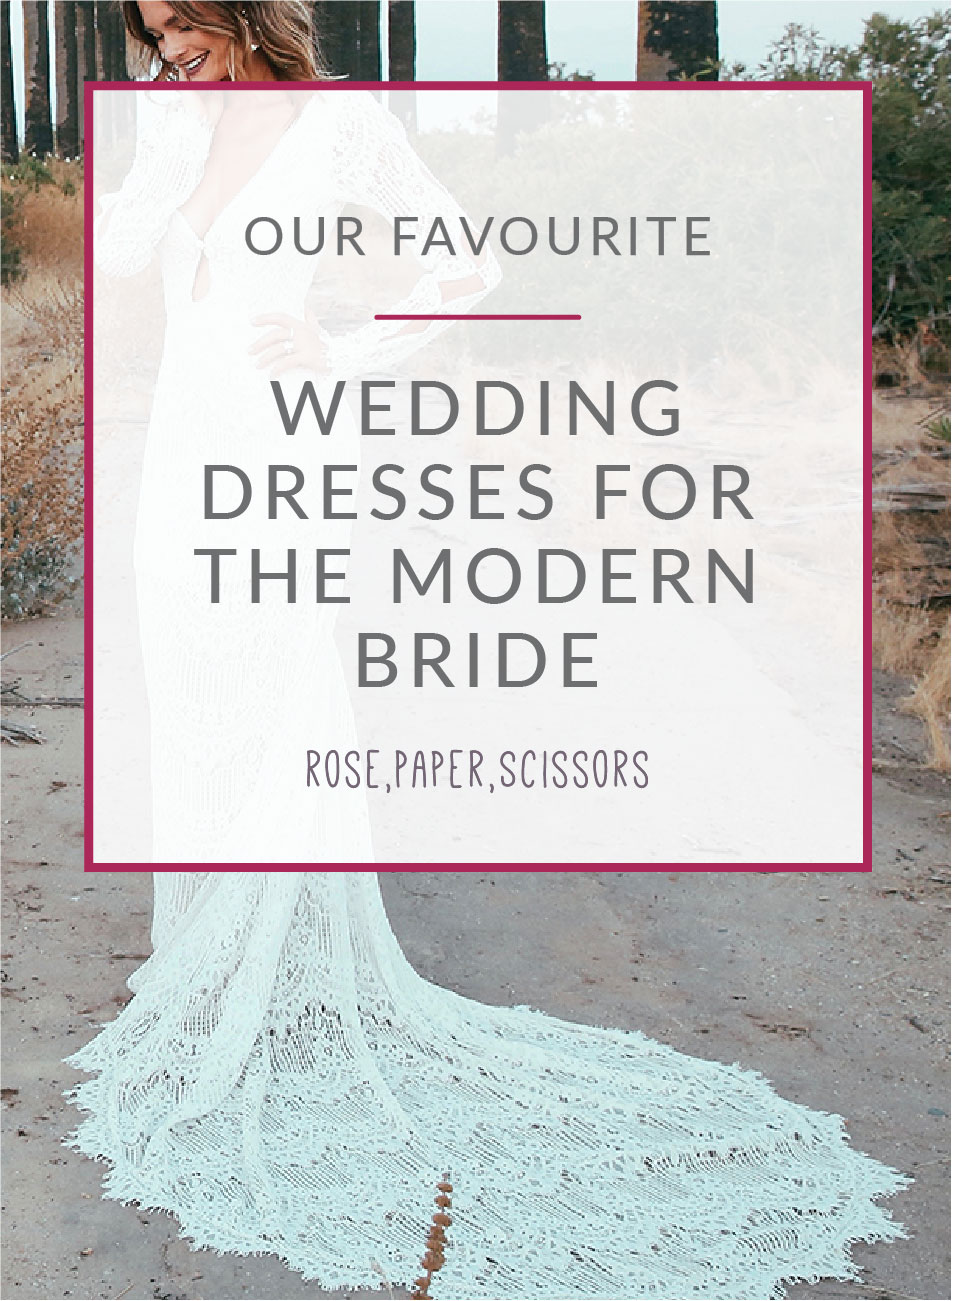 Our favourite wedding dress for the modern bride rose,paper,scissors